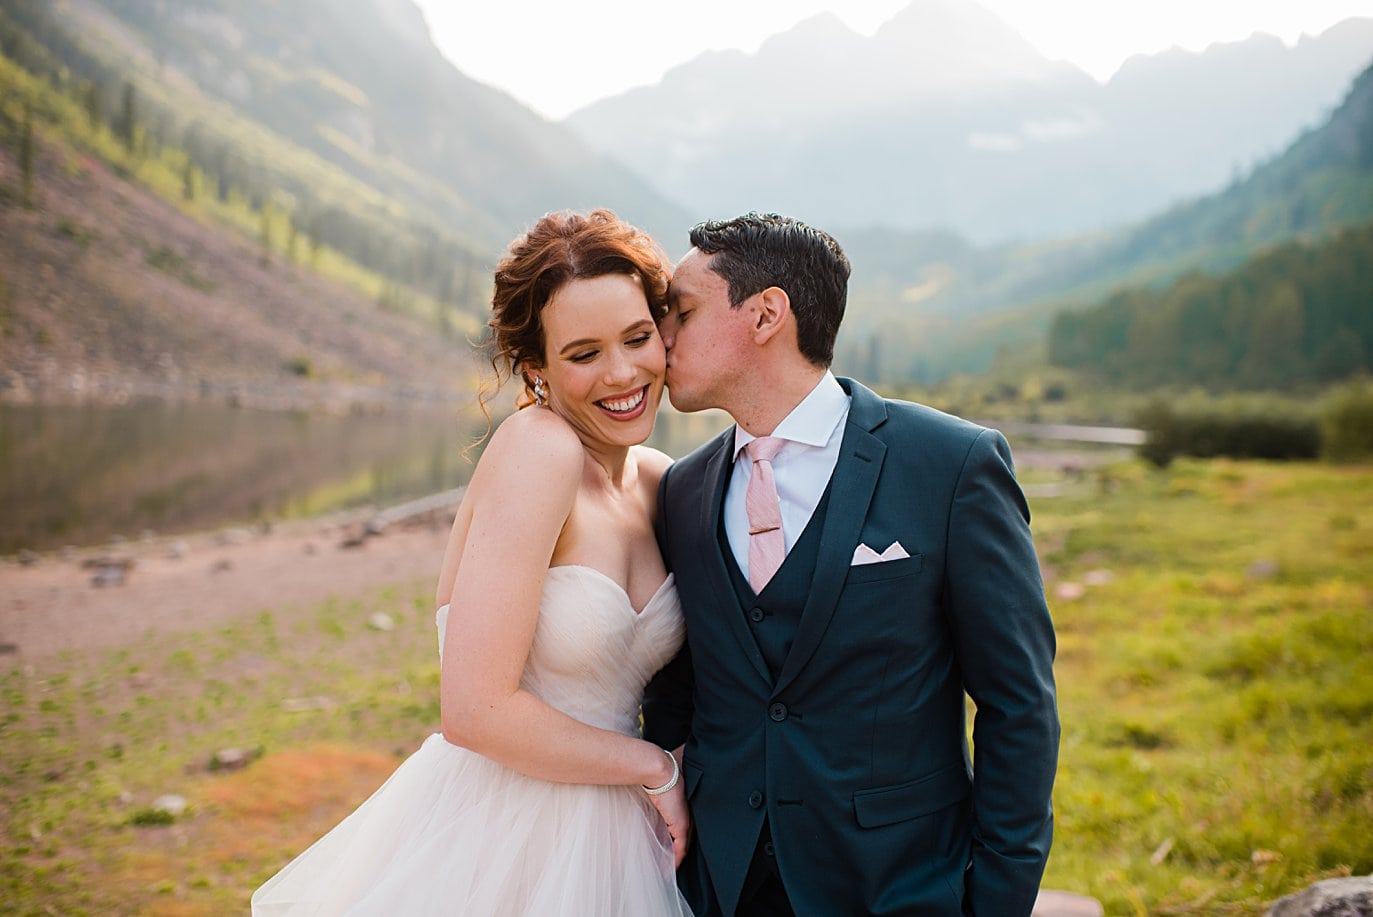 bride and groom cuddle in front of Maroon Lake at fall Maroon Bells wedding by Aspen wedding photographer Jennie Crate